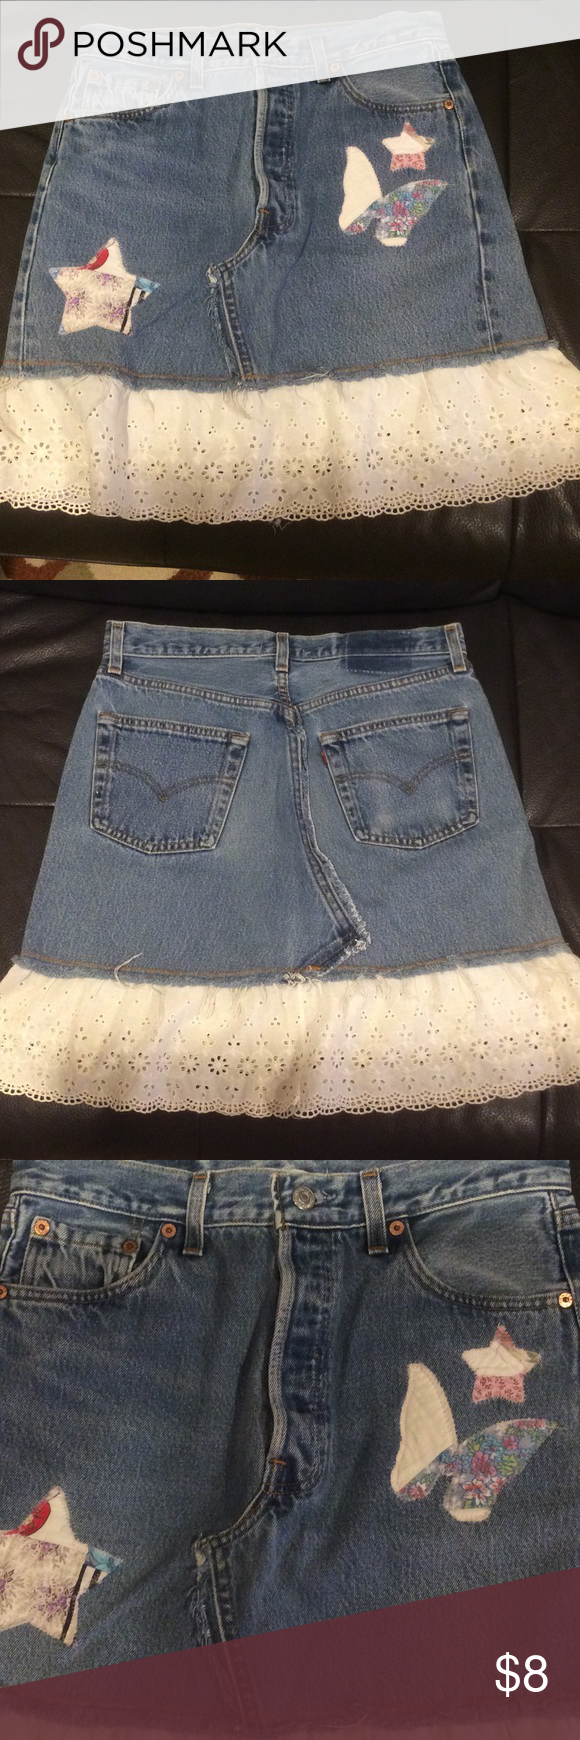 Riley denim embellished skirt Riley brand denim embellished skirt, size small, button closure, no rips, tears or holes, 15 inch flat waist, 19 inch length from top button to bottom hem of skirt, eyelet white bottom embroidery hem (see pictures) Riley Skirts